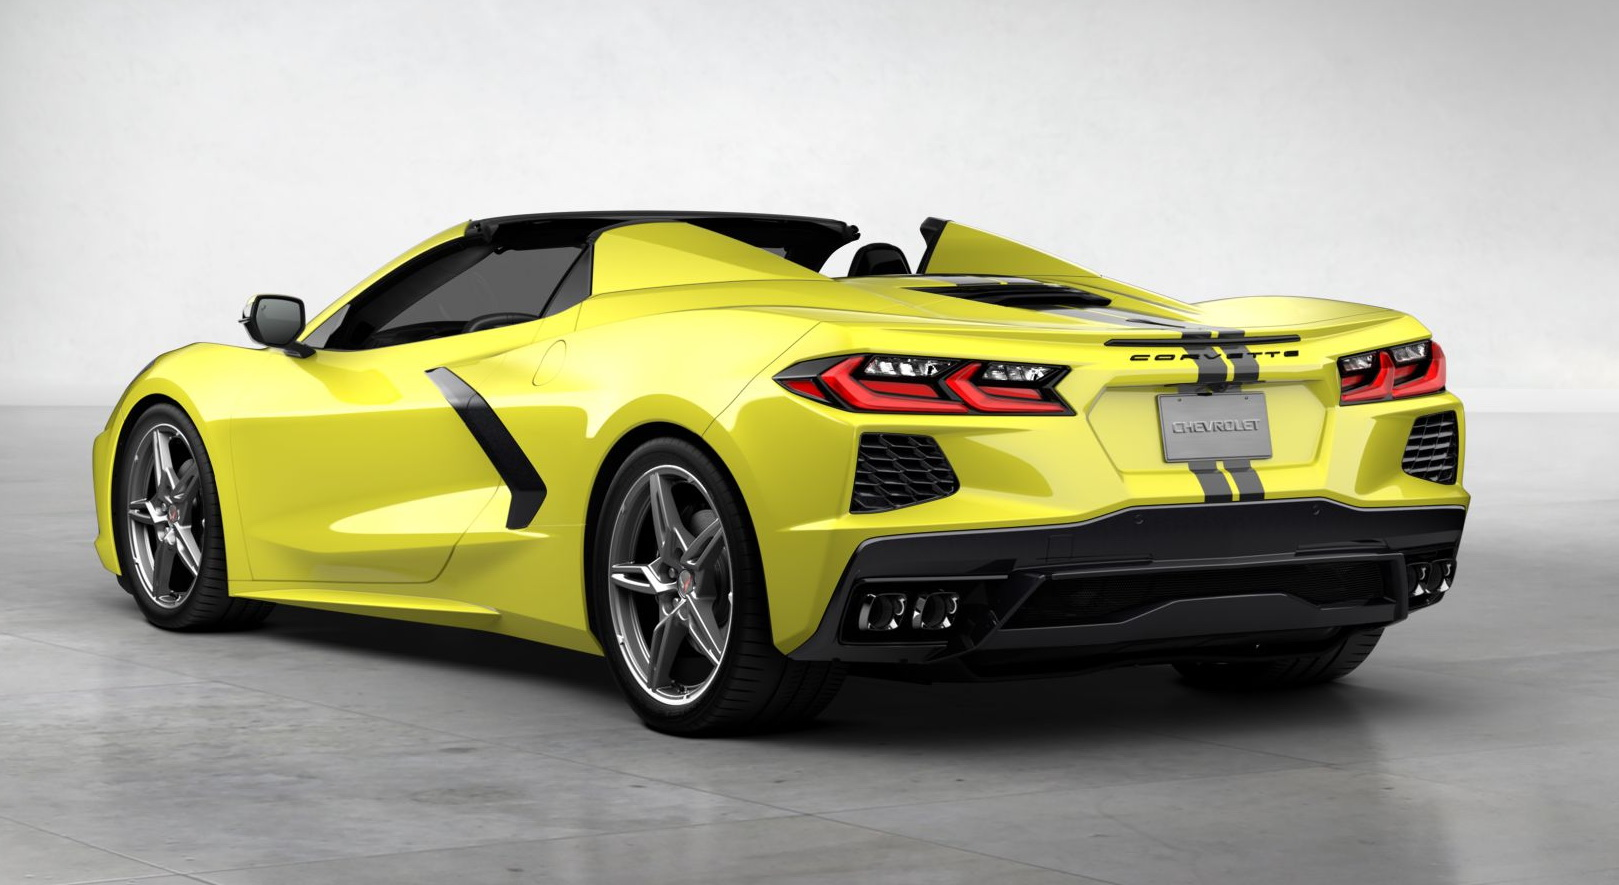 First Chevrolet C8 Corvette Stingray sells at auction